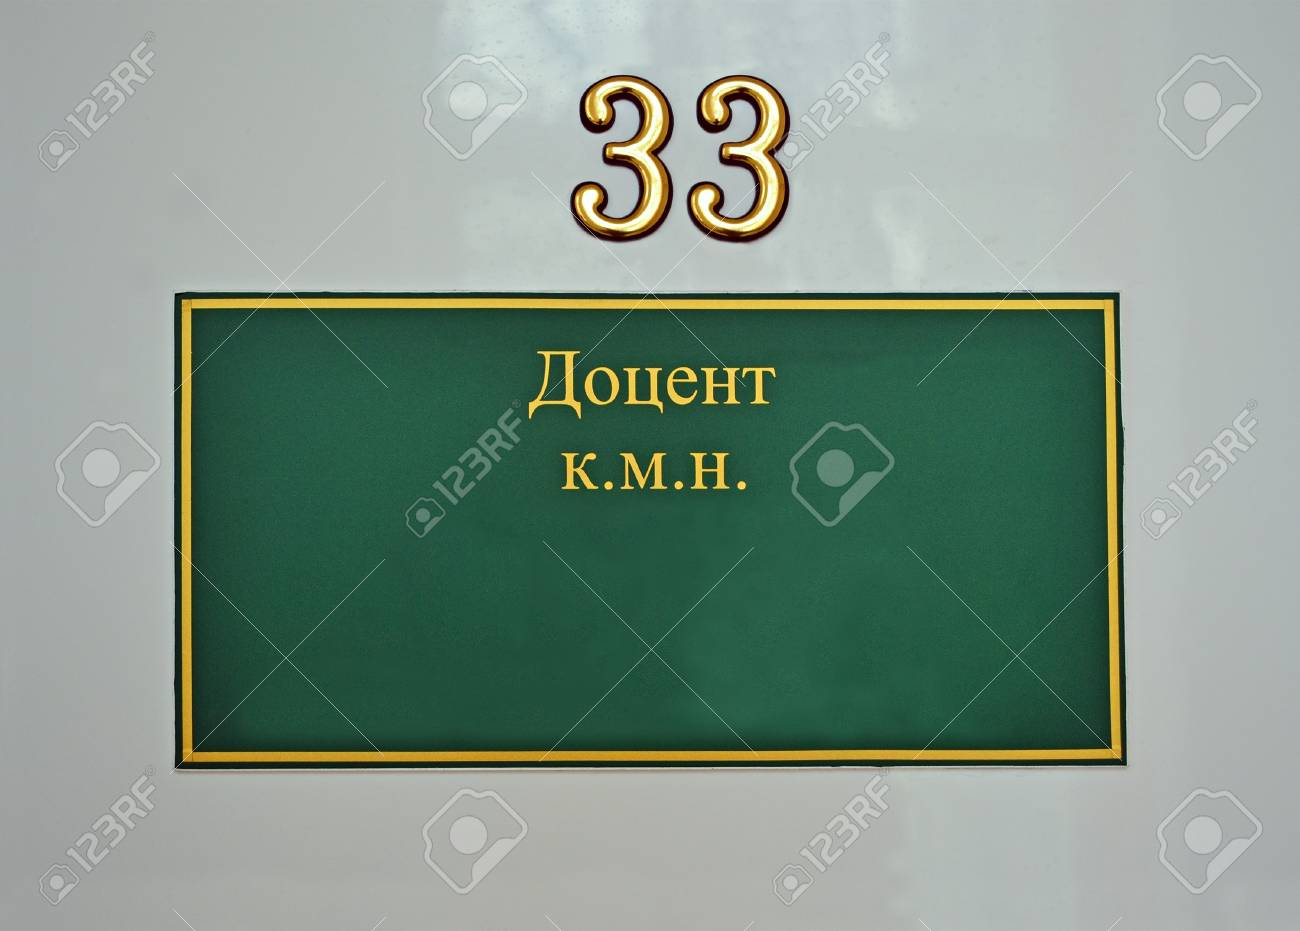 room 33, senior lecturer as text on green signboard on russian language, university education details Stock Photo - 17757516